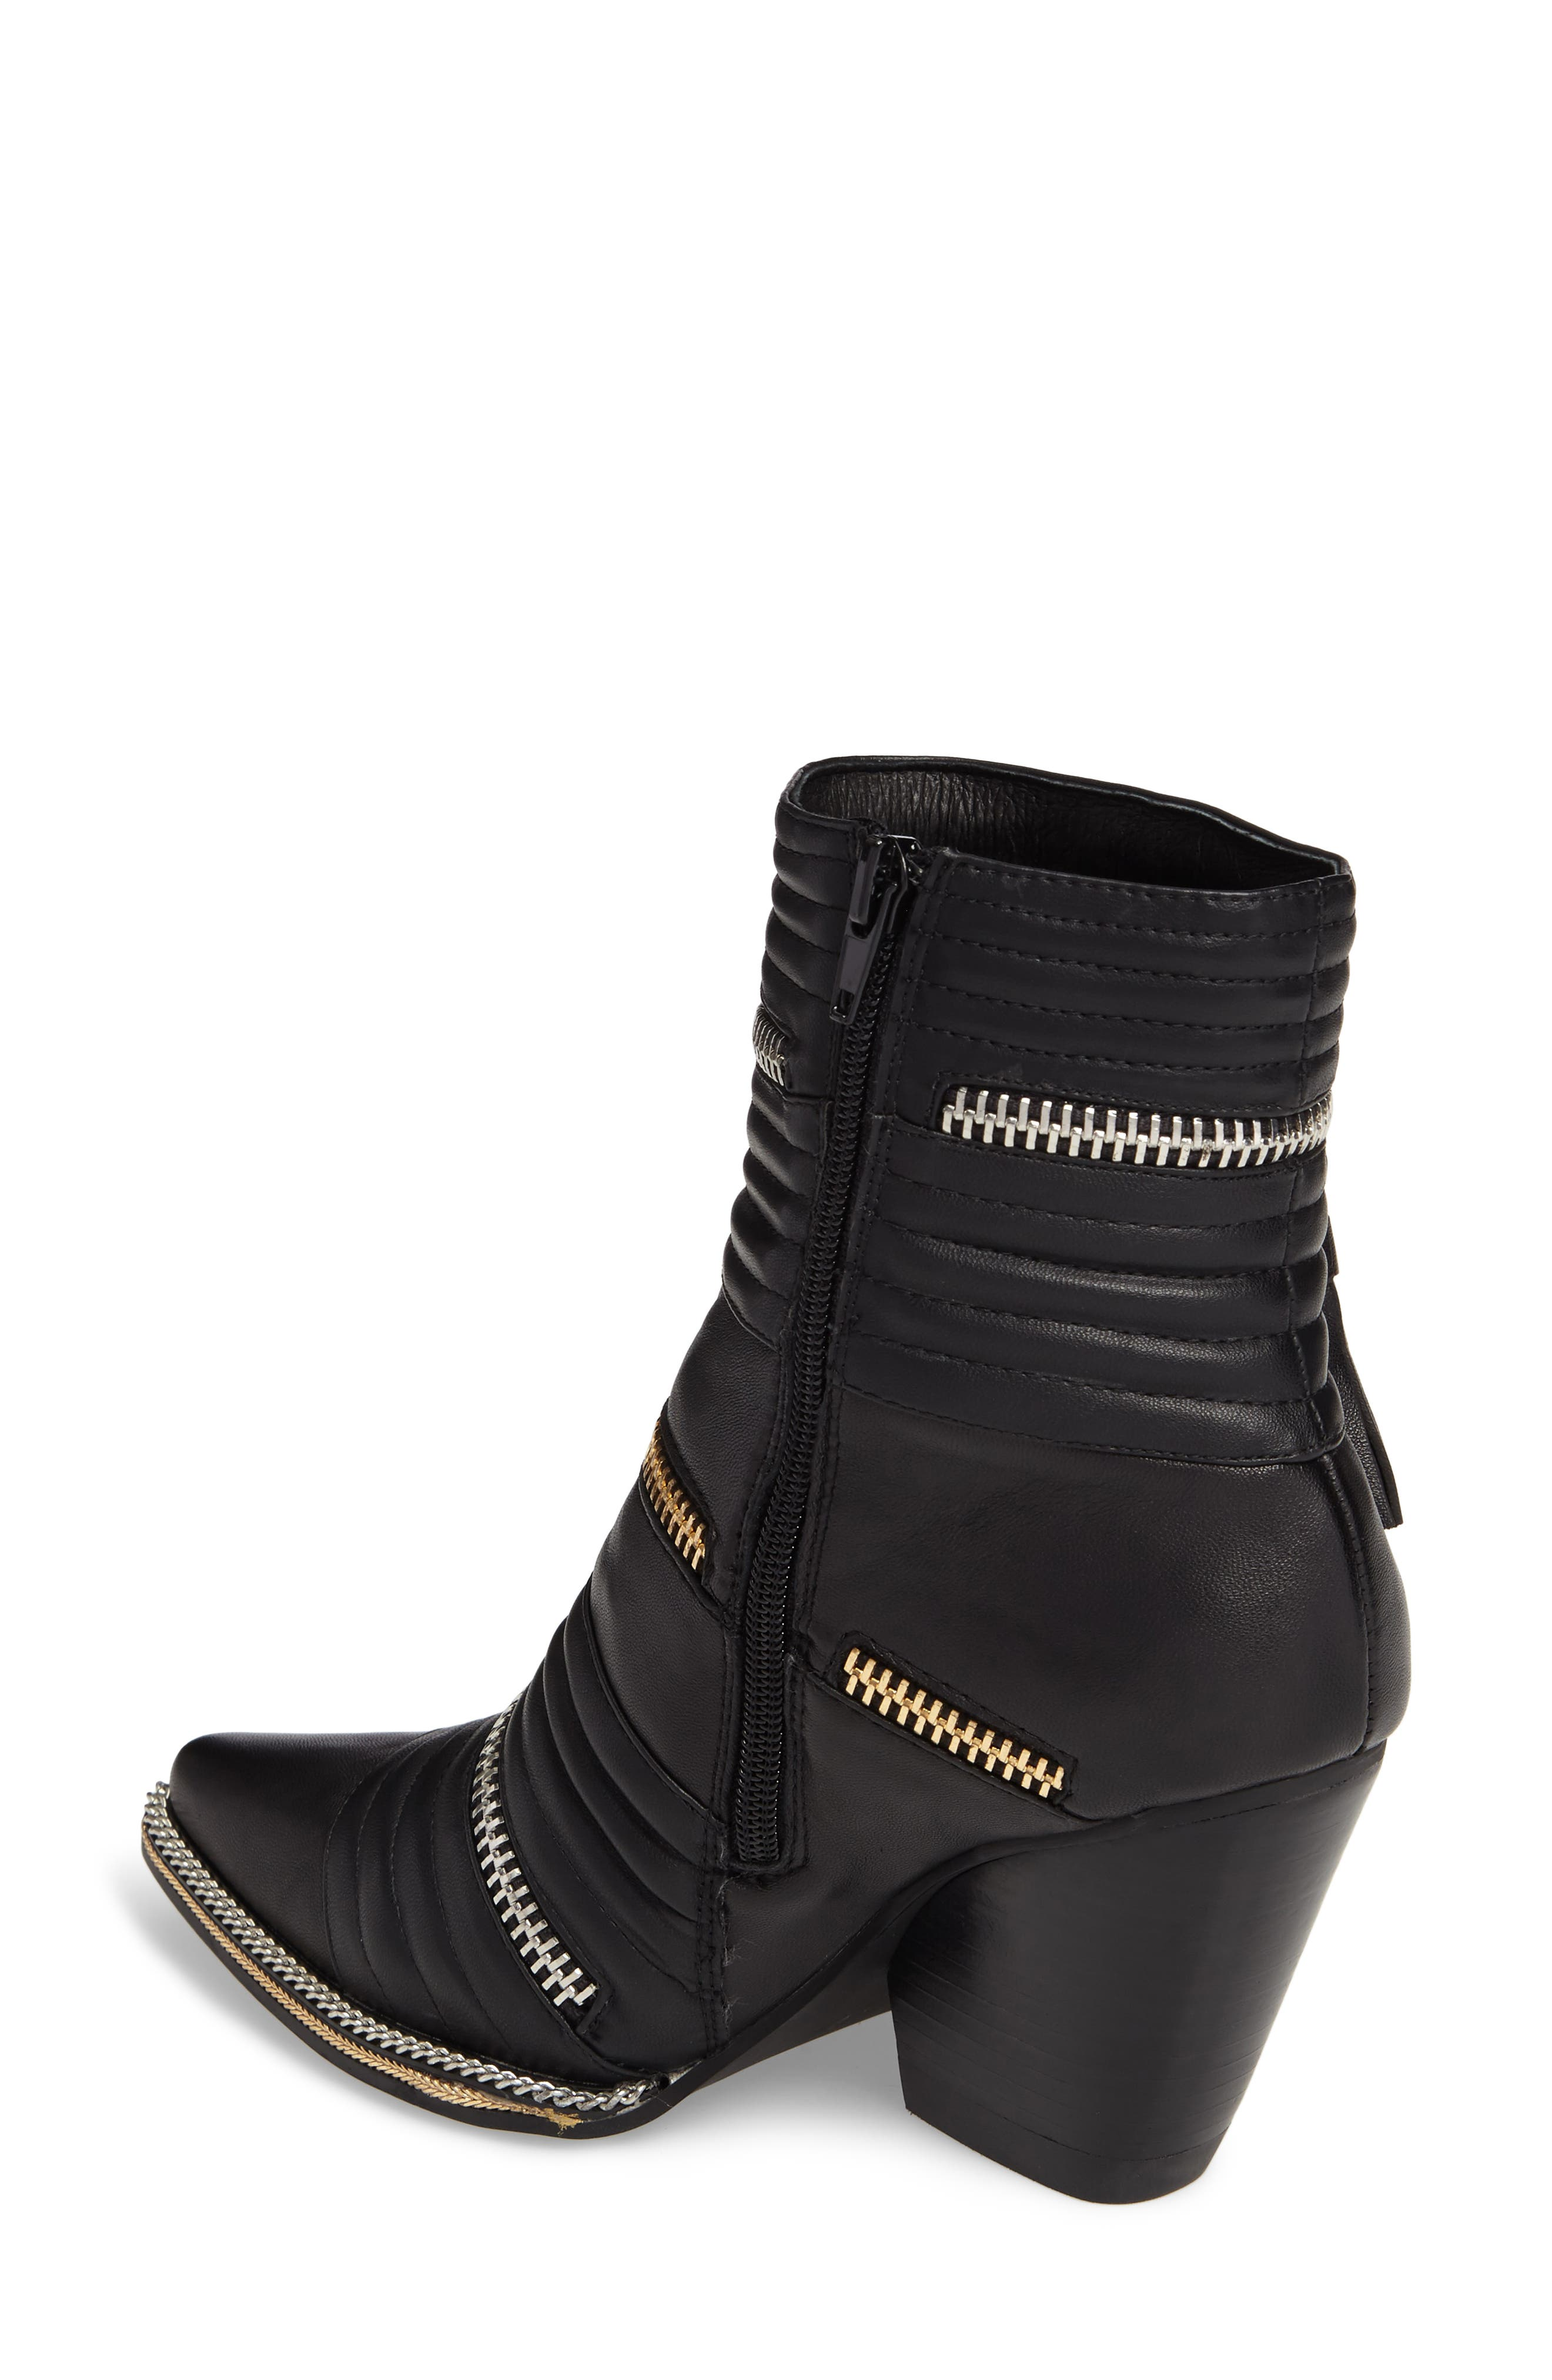 Tenzin Chain Pointy Toe Boot,                             Alternate thumbnail 2, color,                             001